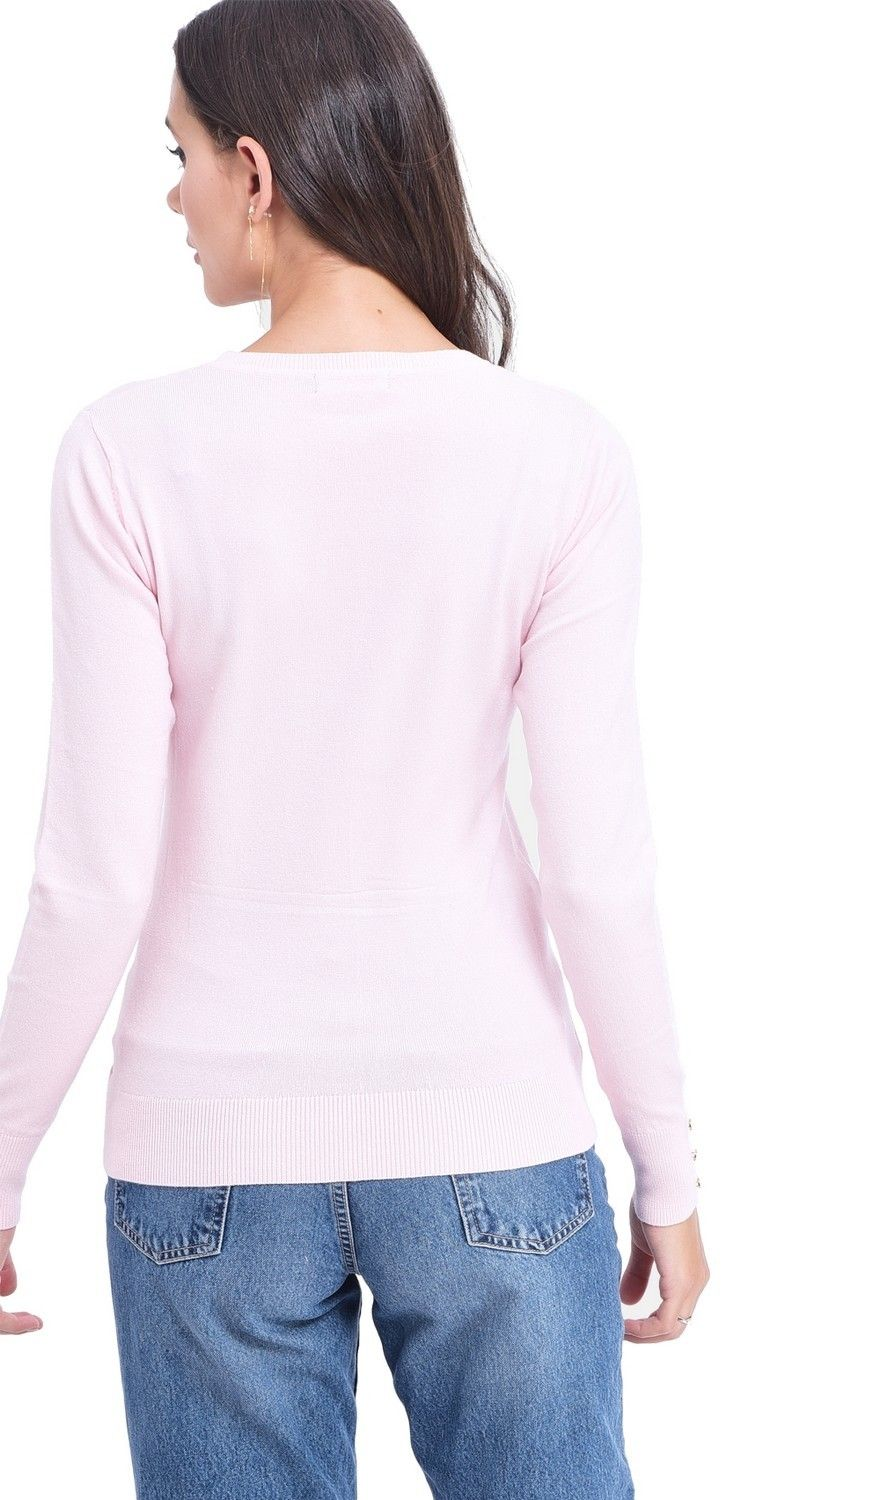 Assuili Round Neck Sweater with Buttoned Sleeves in Pink